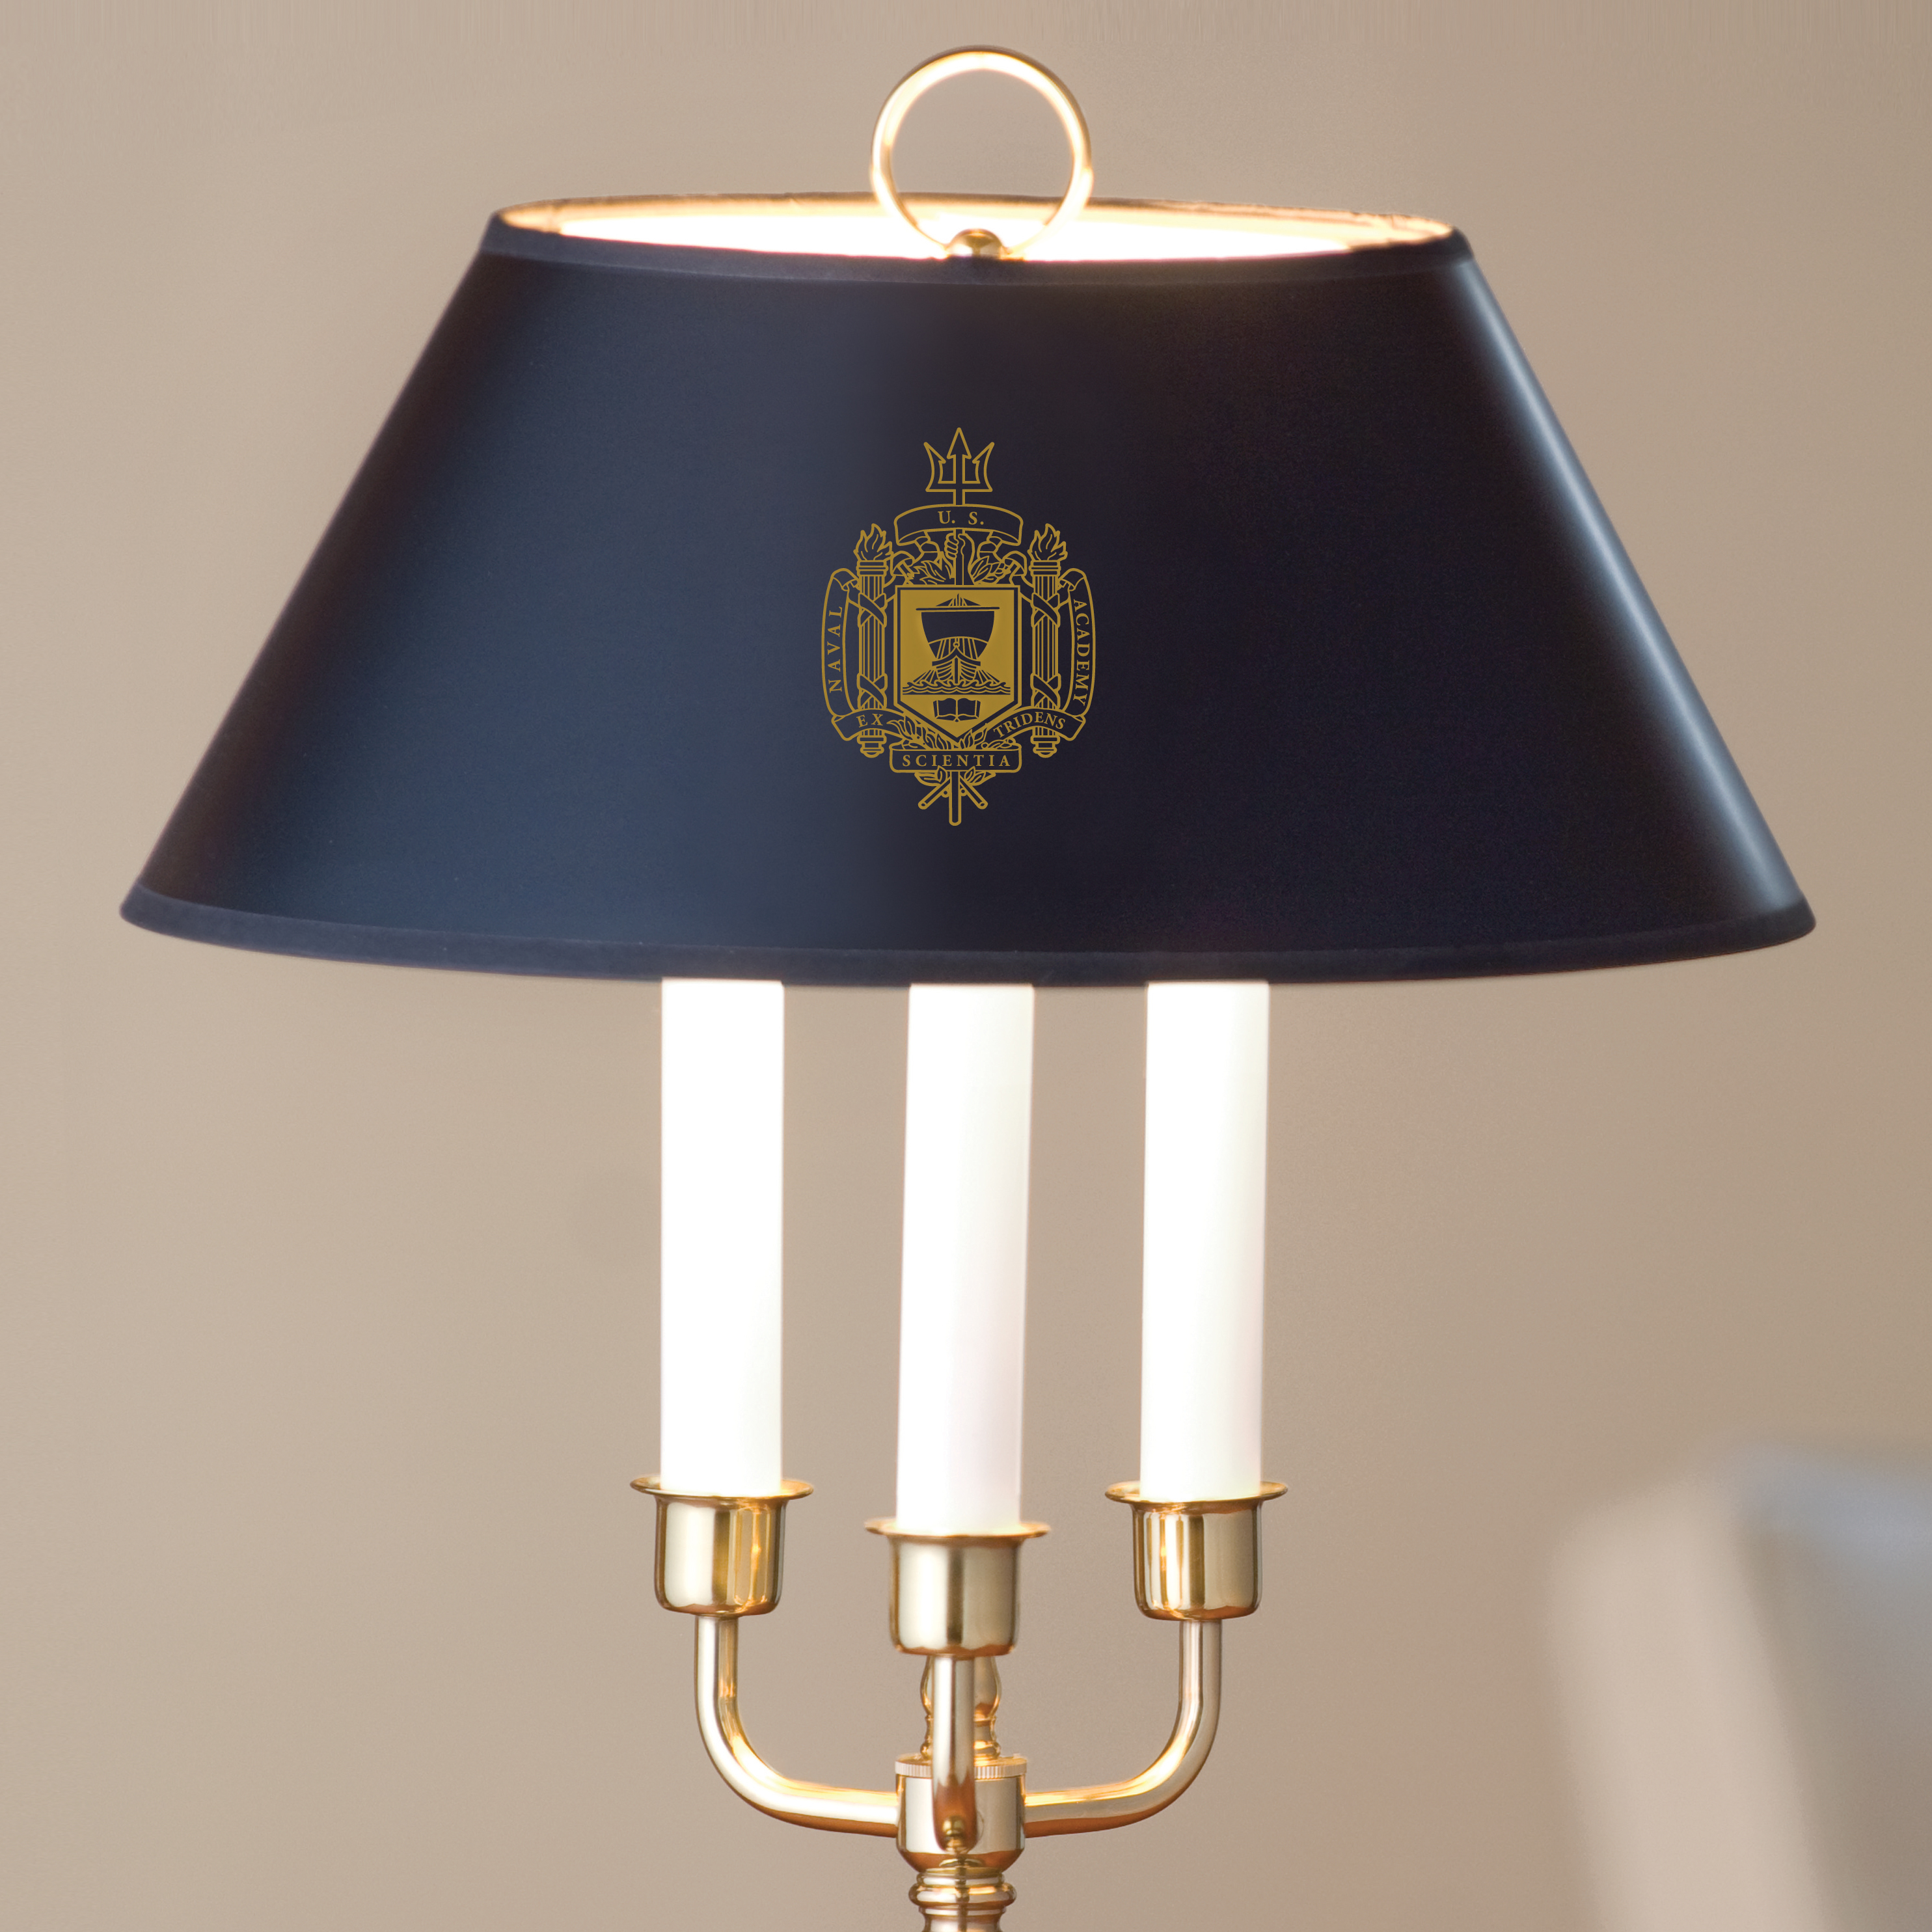 Brilliant Us Naval Academy Lamp In Brass Marble Home Interior And Landscaping Palasignezvosmurscom